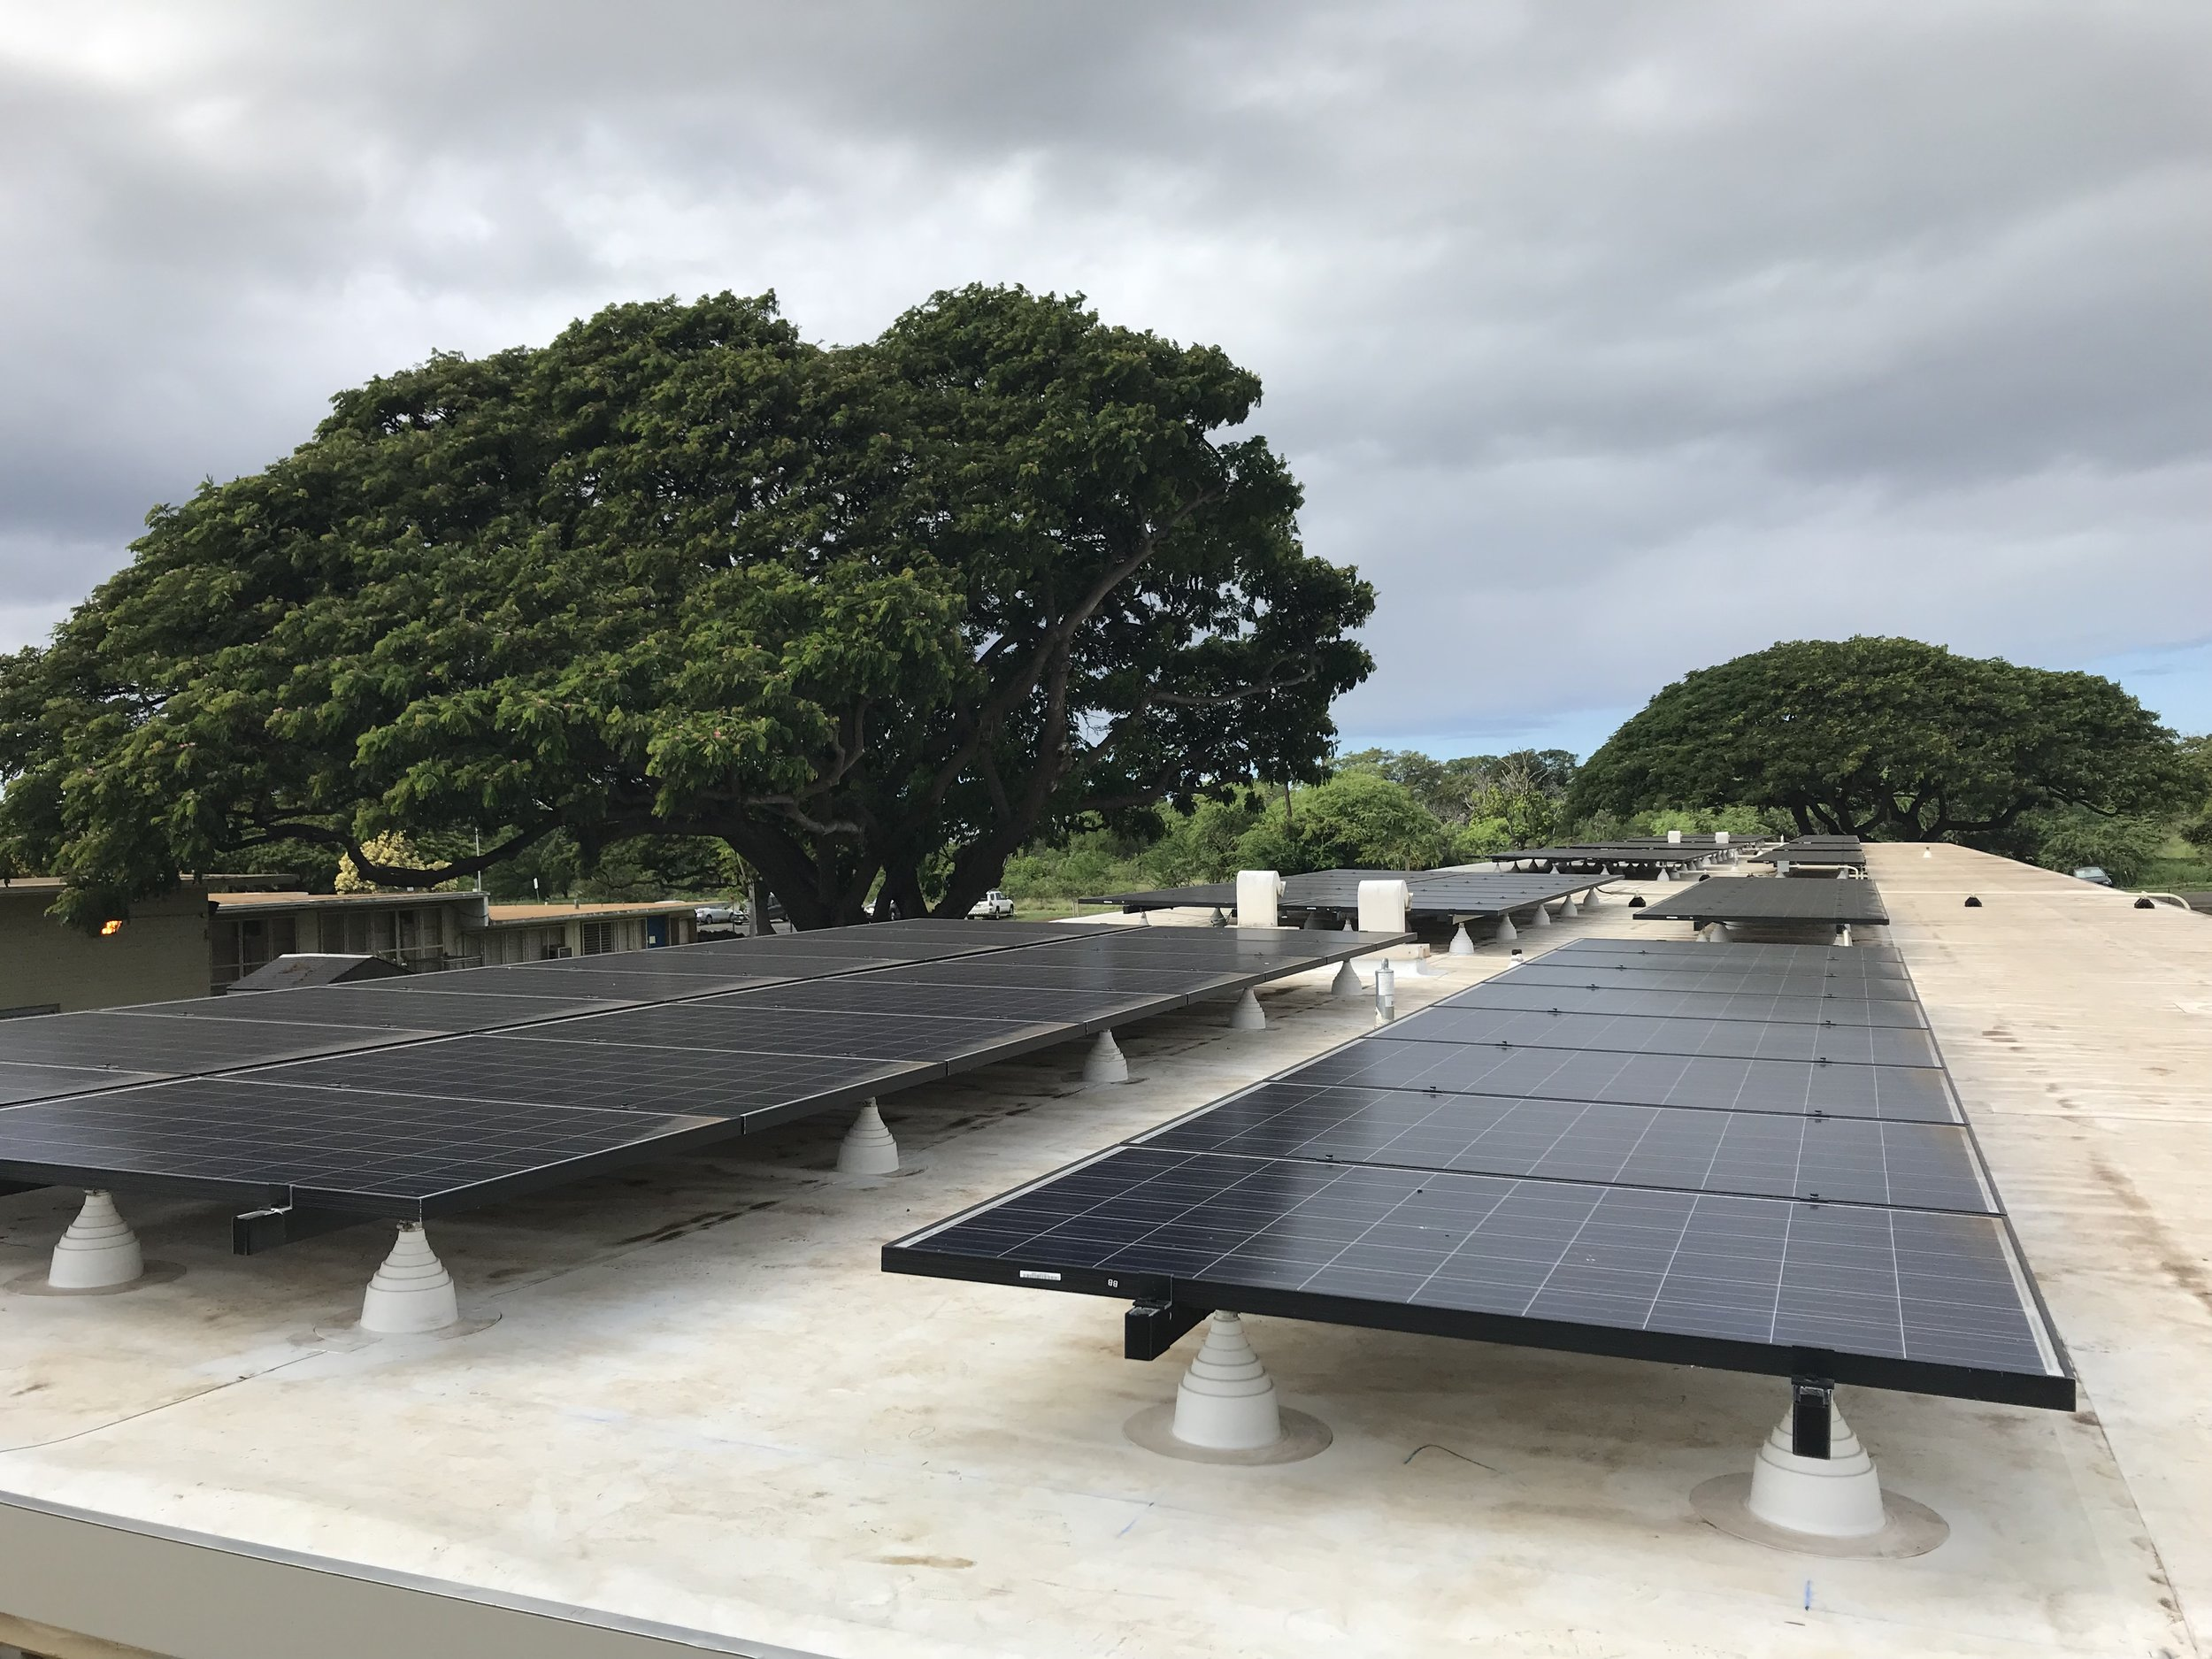 Barbers Point Elementary School (2017)   Off-grid air conditioning systems for the Hawaii DOE Cool the Schools Initiative using PV, Tesla Powerwall 2s for energy storage and Mitsubishi Split Air Conditioners.